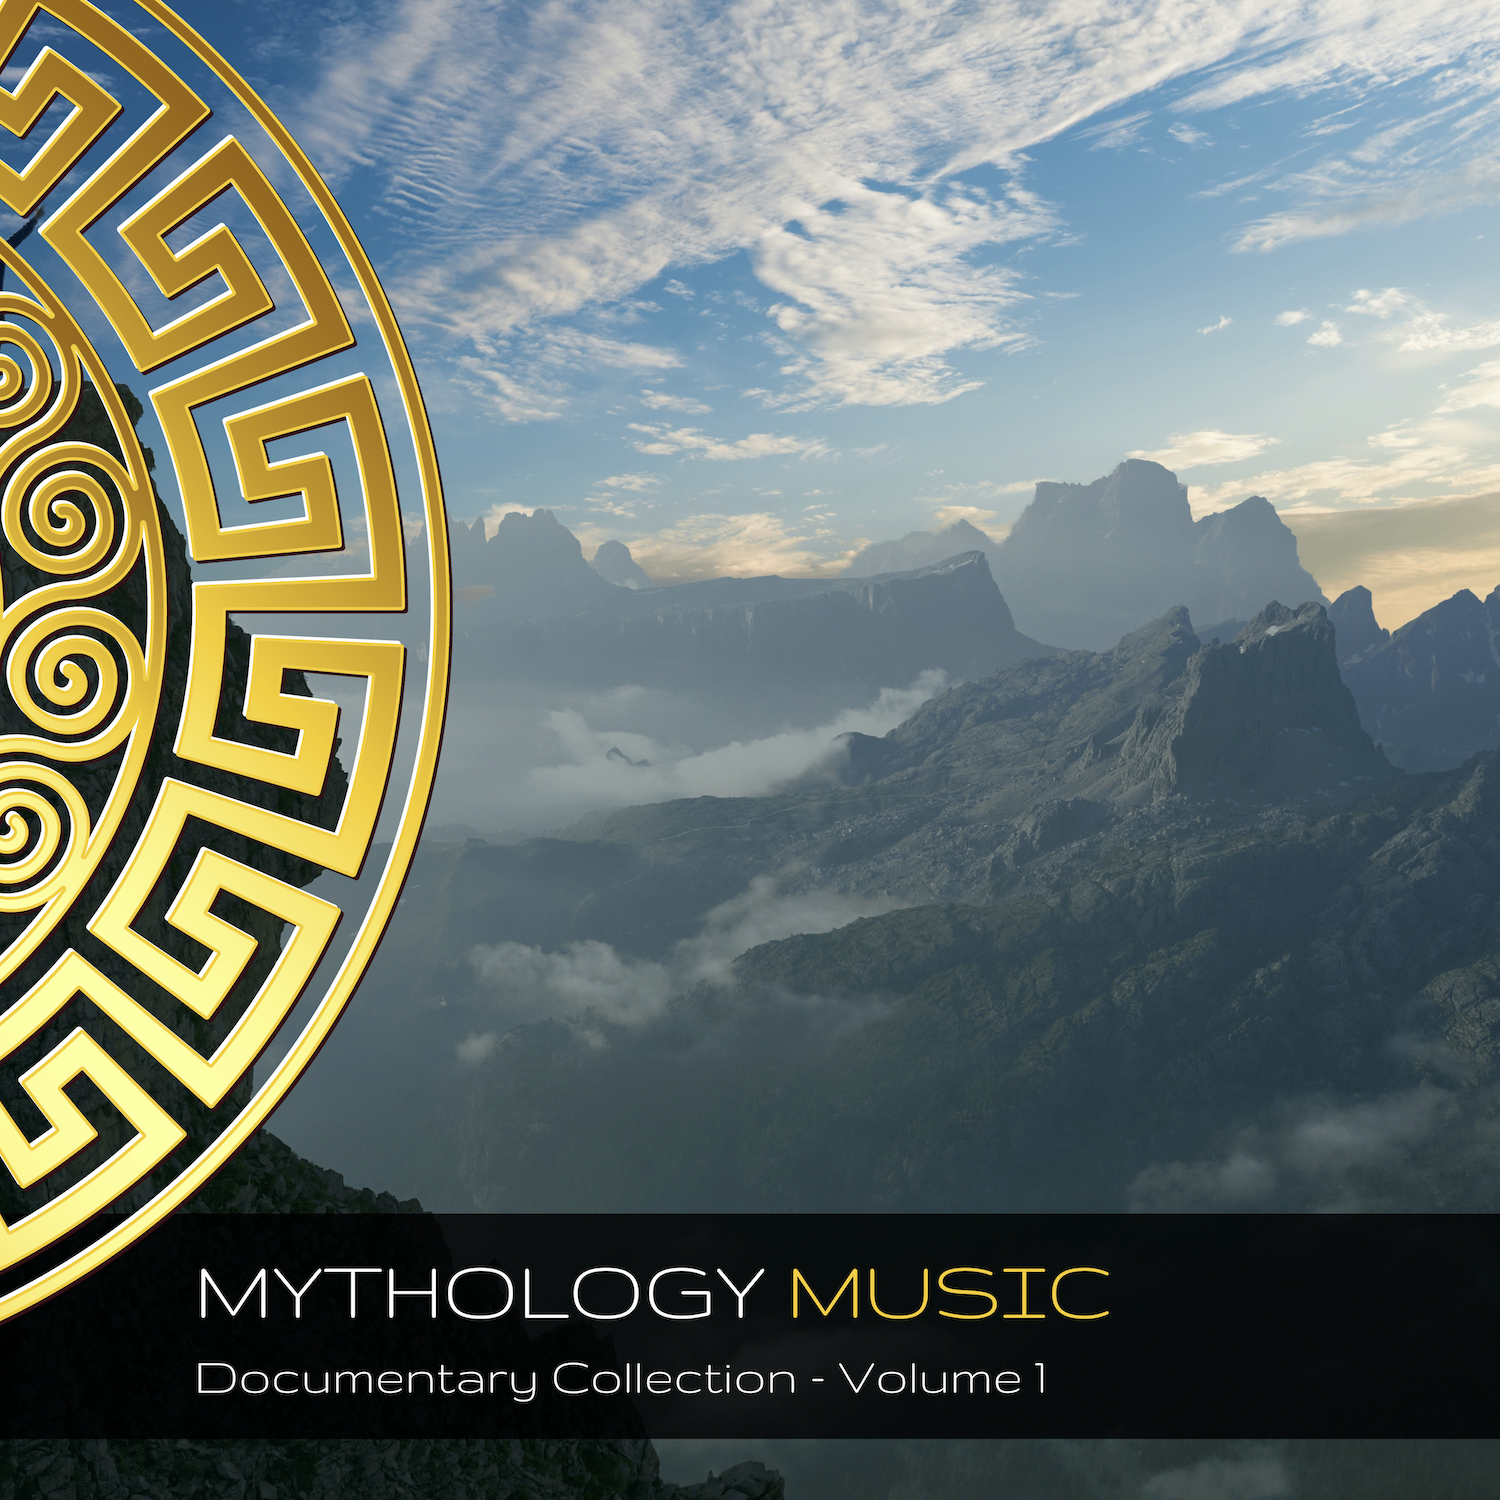 Mythology Music - Documentary Collection